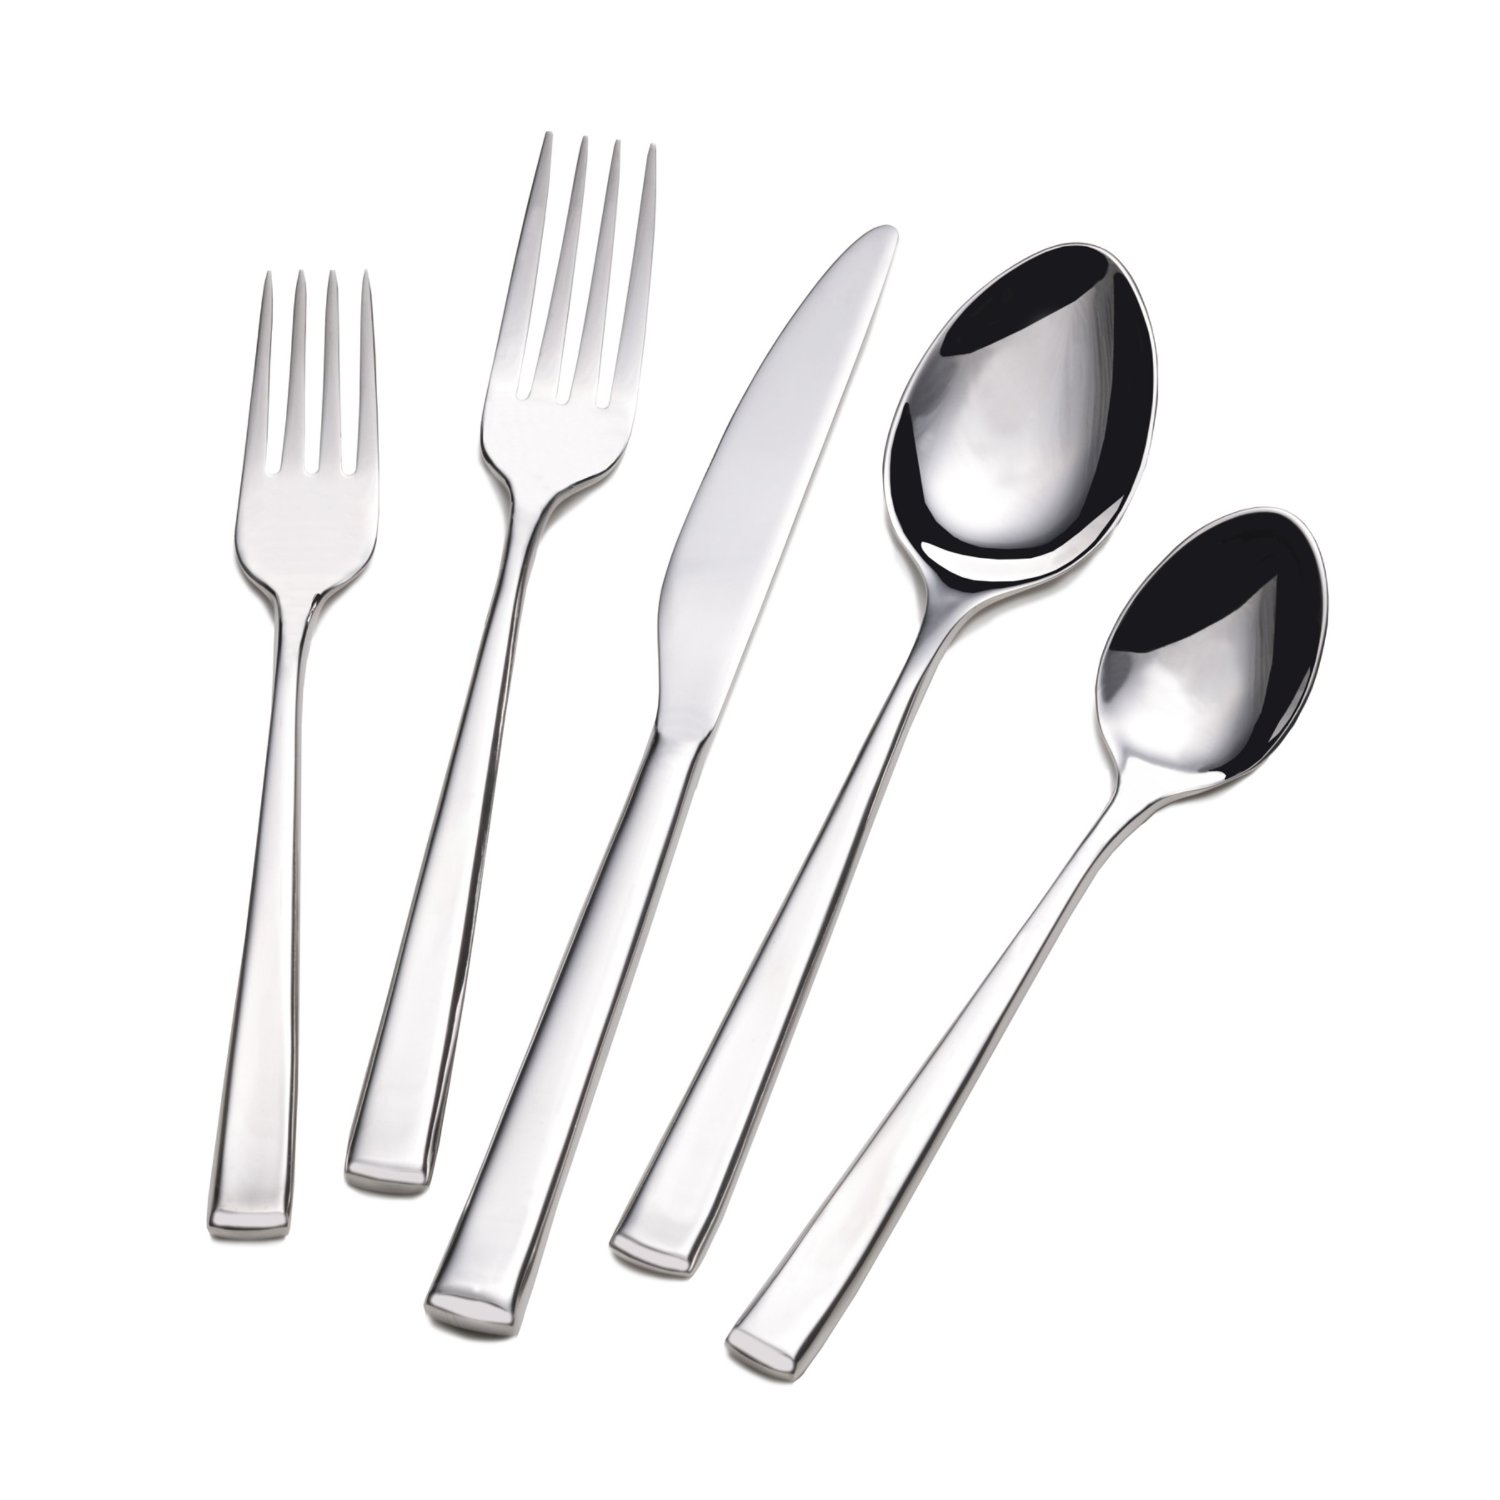 Cozy towle flatware 5 piece stainless steel flatware set for serveware ideas